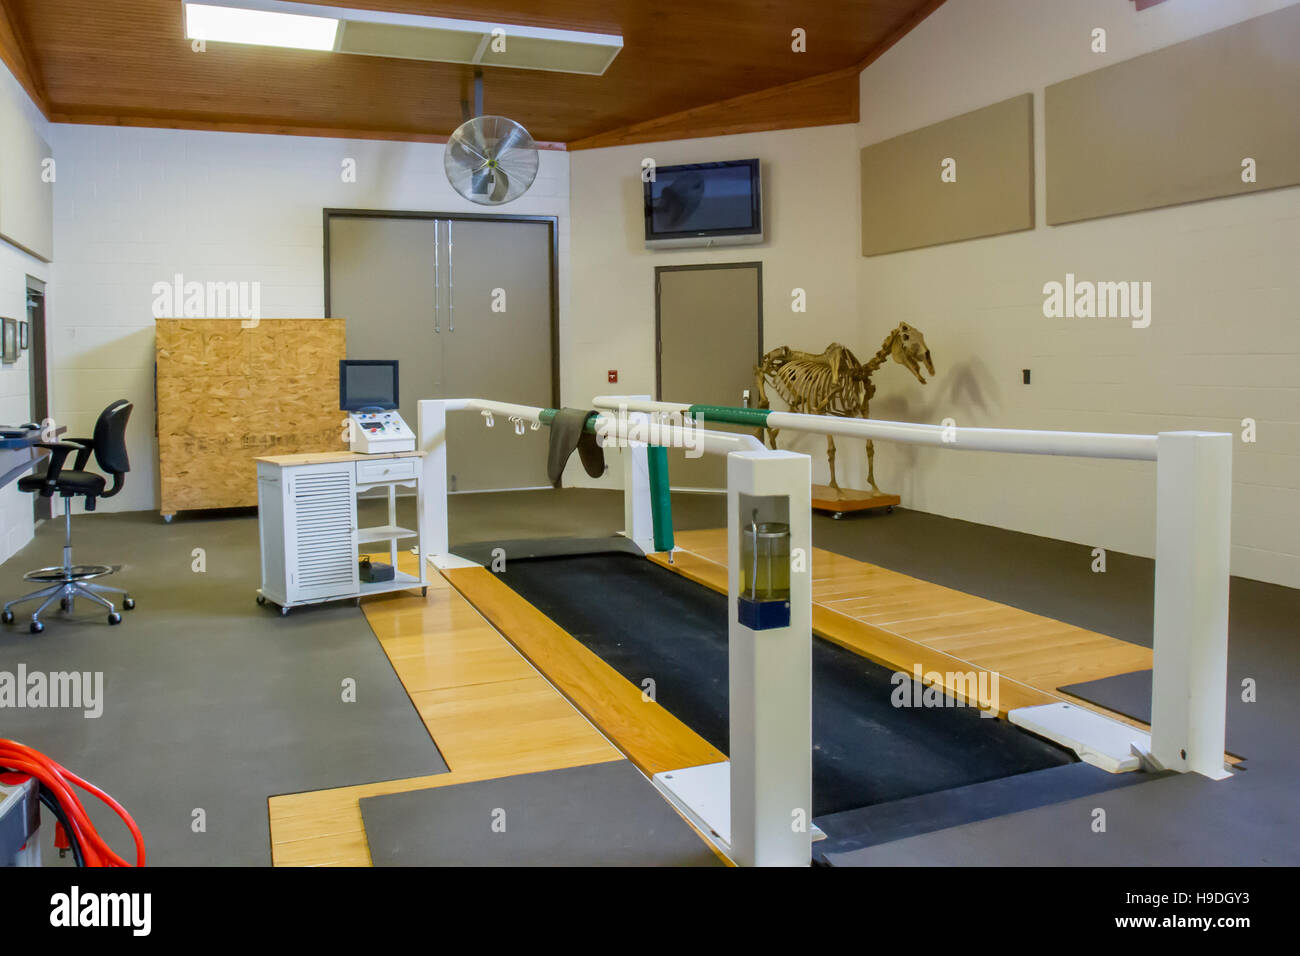 Equine treadmill, monitoring equipment and skeleton of  horse in veterinary hospital. - Stock Image